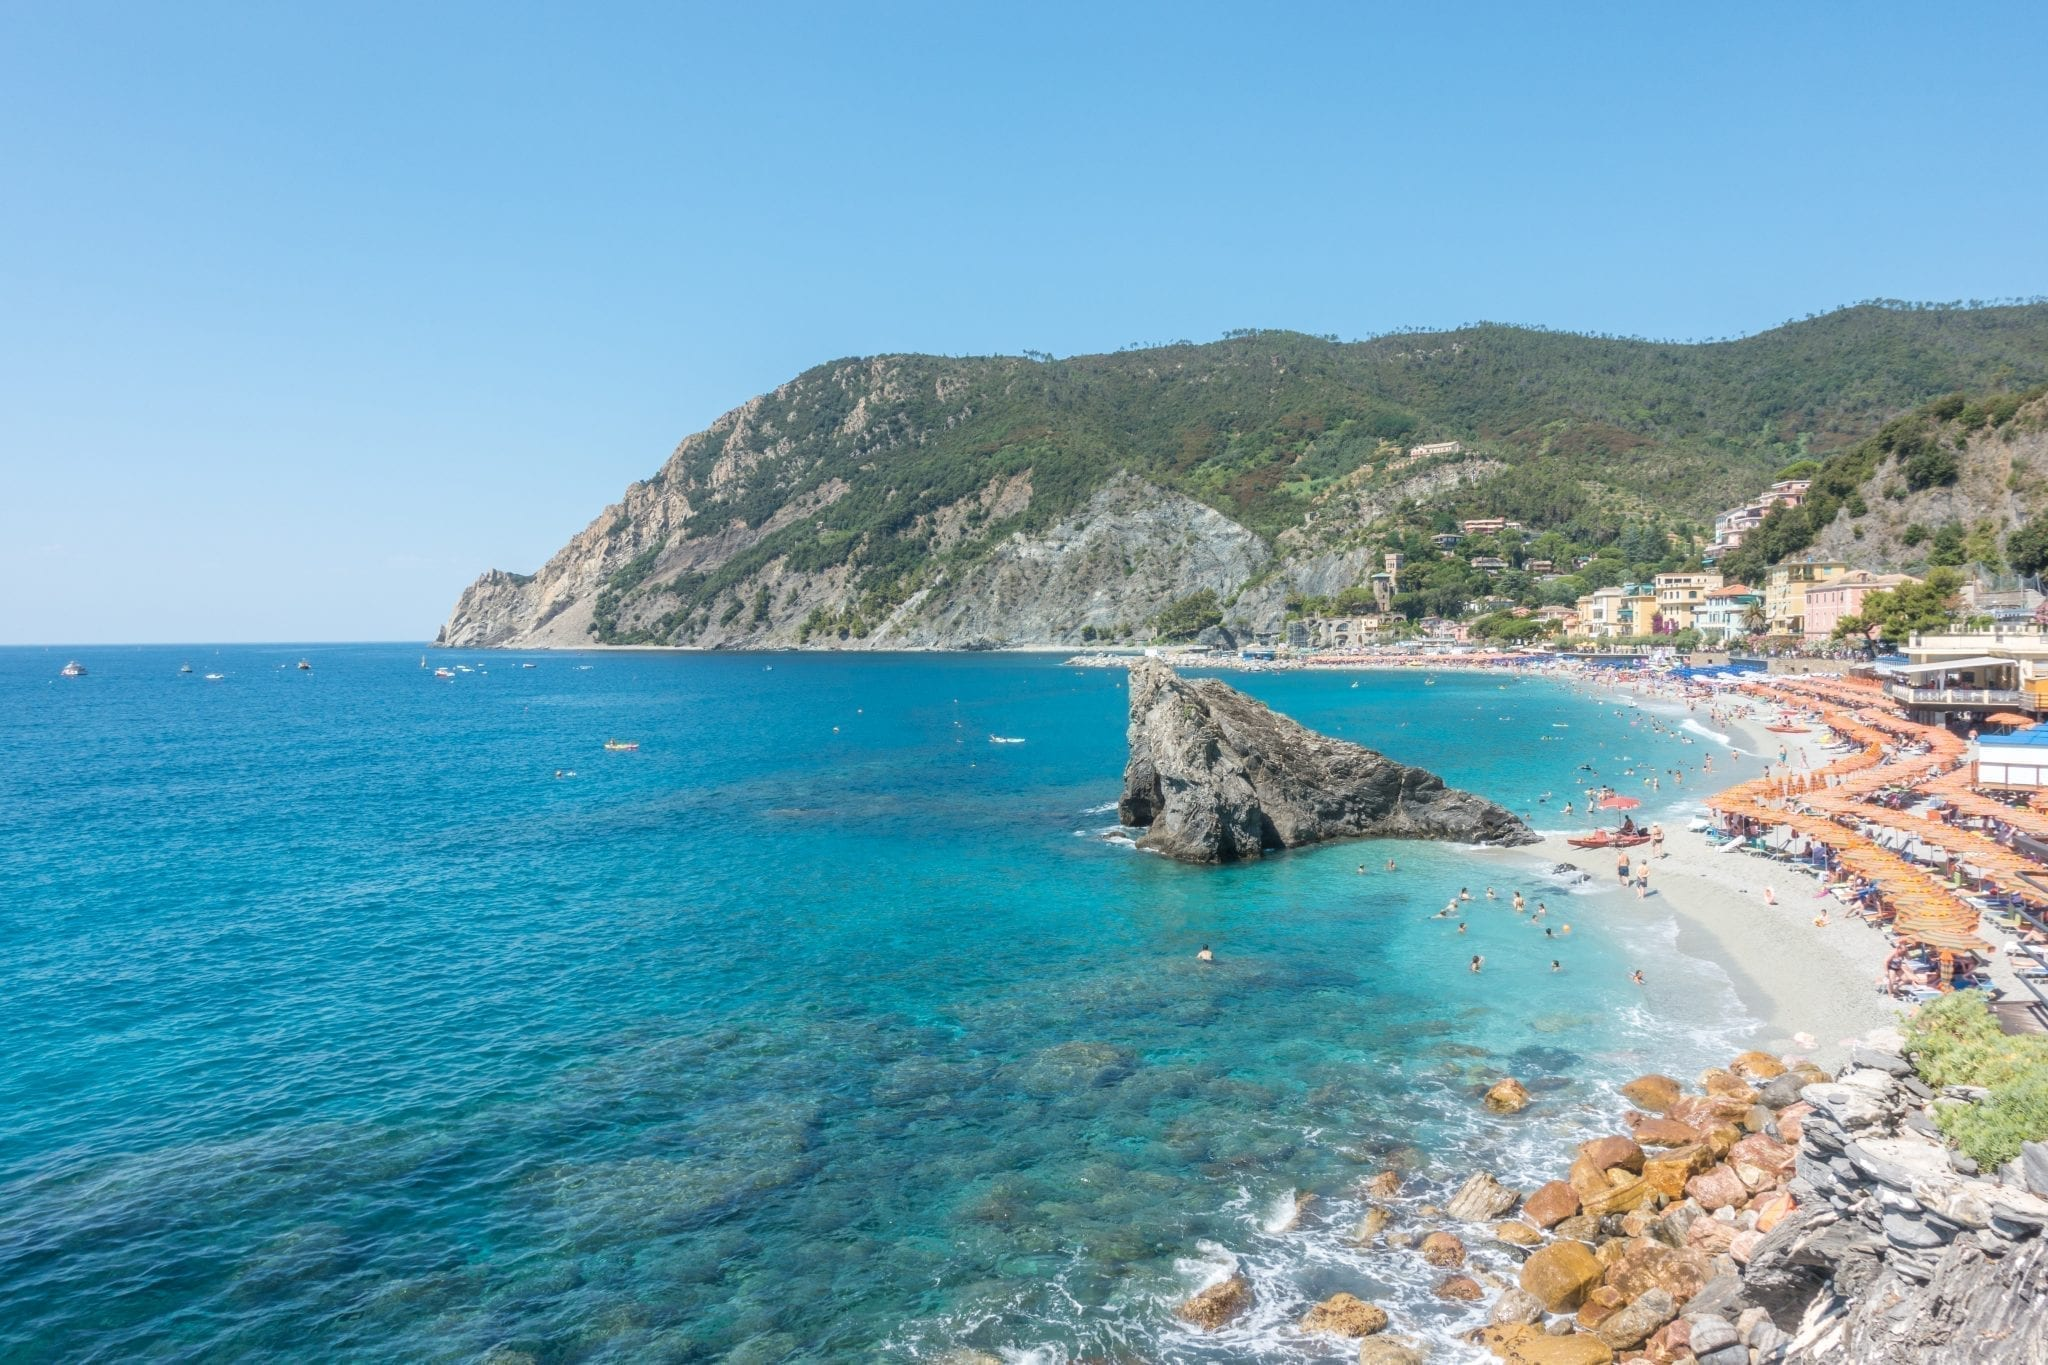 View of Monterosso al Mare beach from above on a sunny day, umbrellas are visible on the right side of the photo. This beach is one of the most instagrammable places in Cinque Terre!